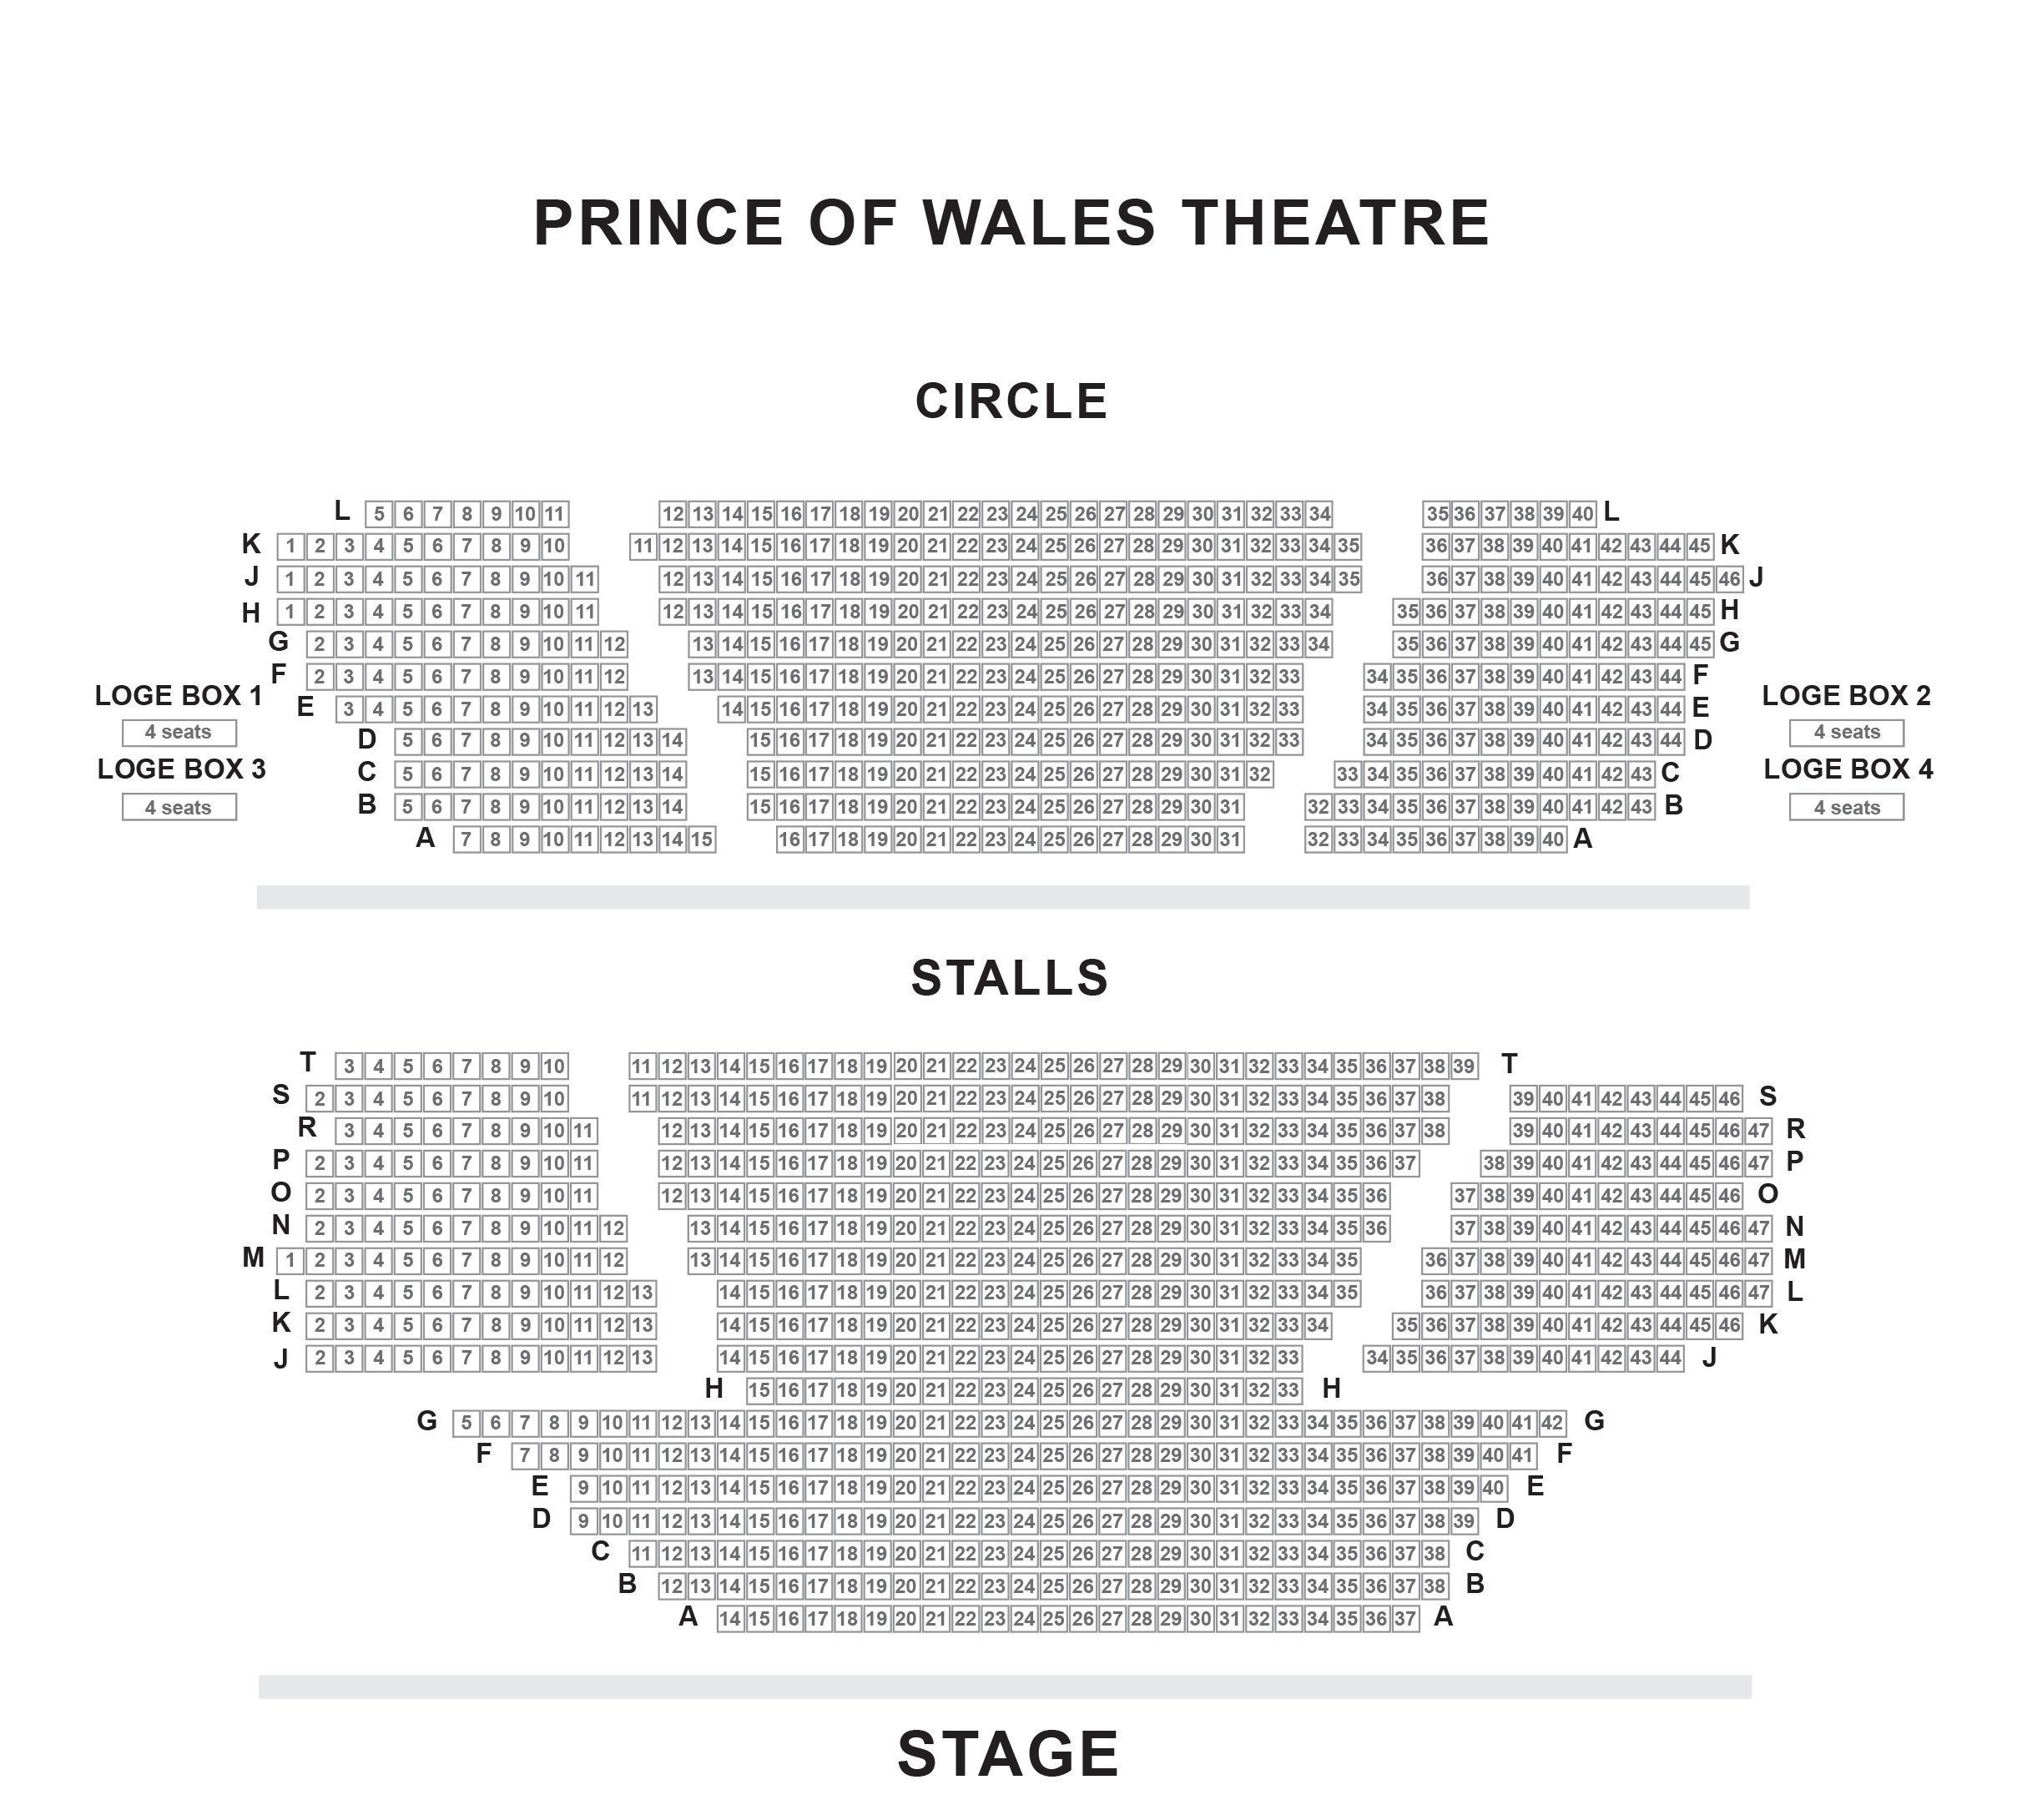 Prince of wales theatre zaalplan the book of mormon london box office - The book of mormon box office ...